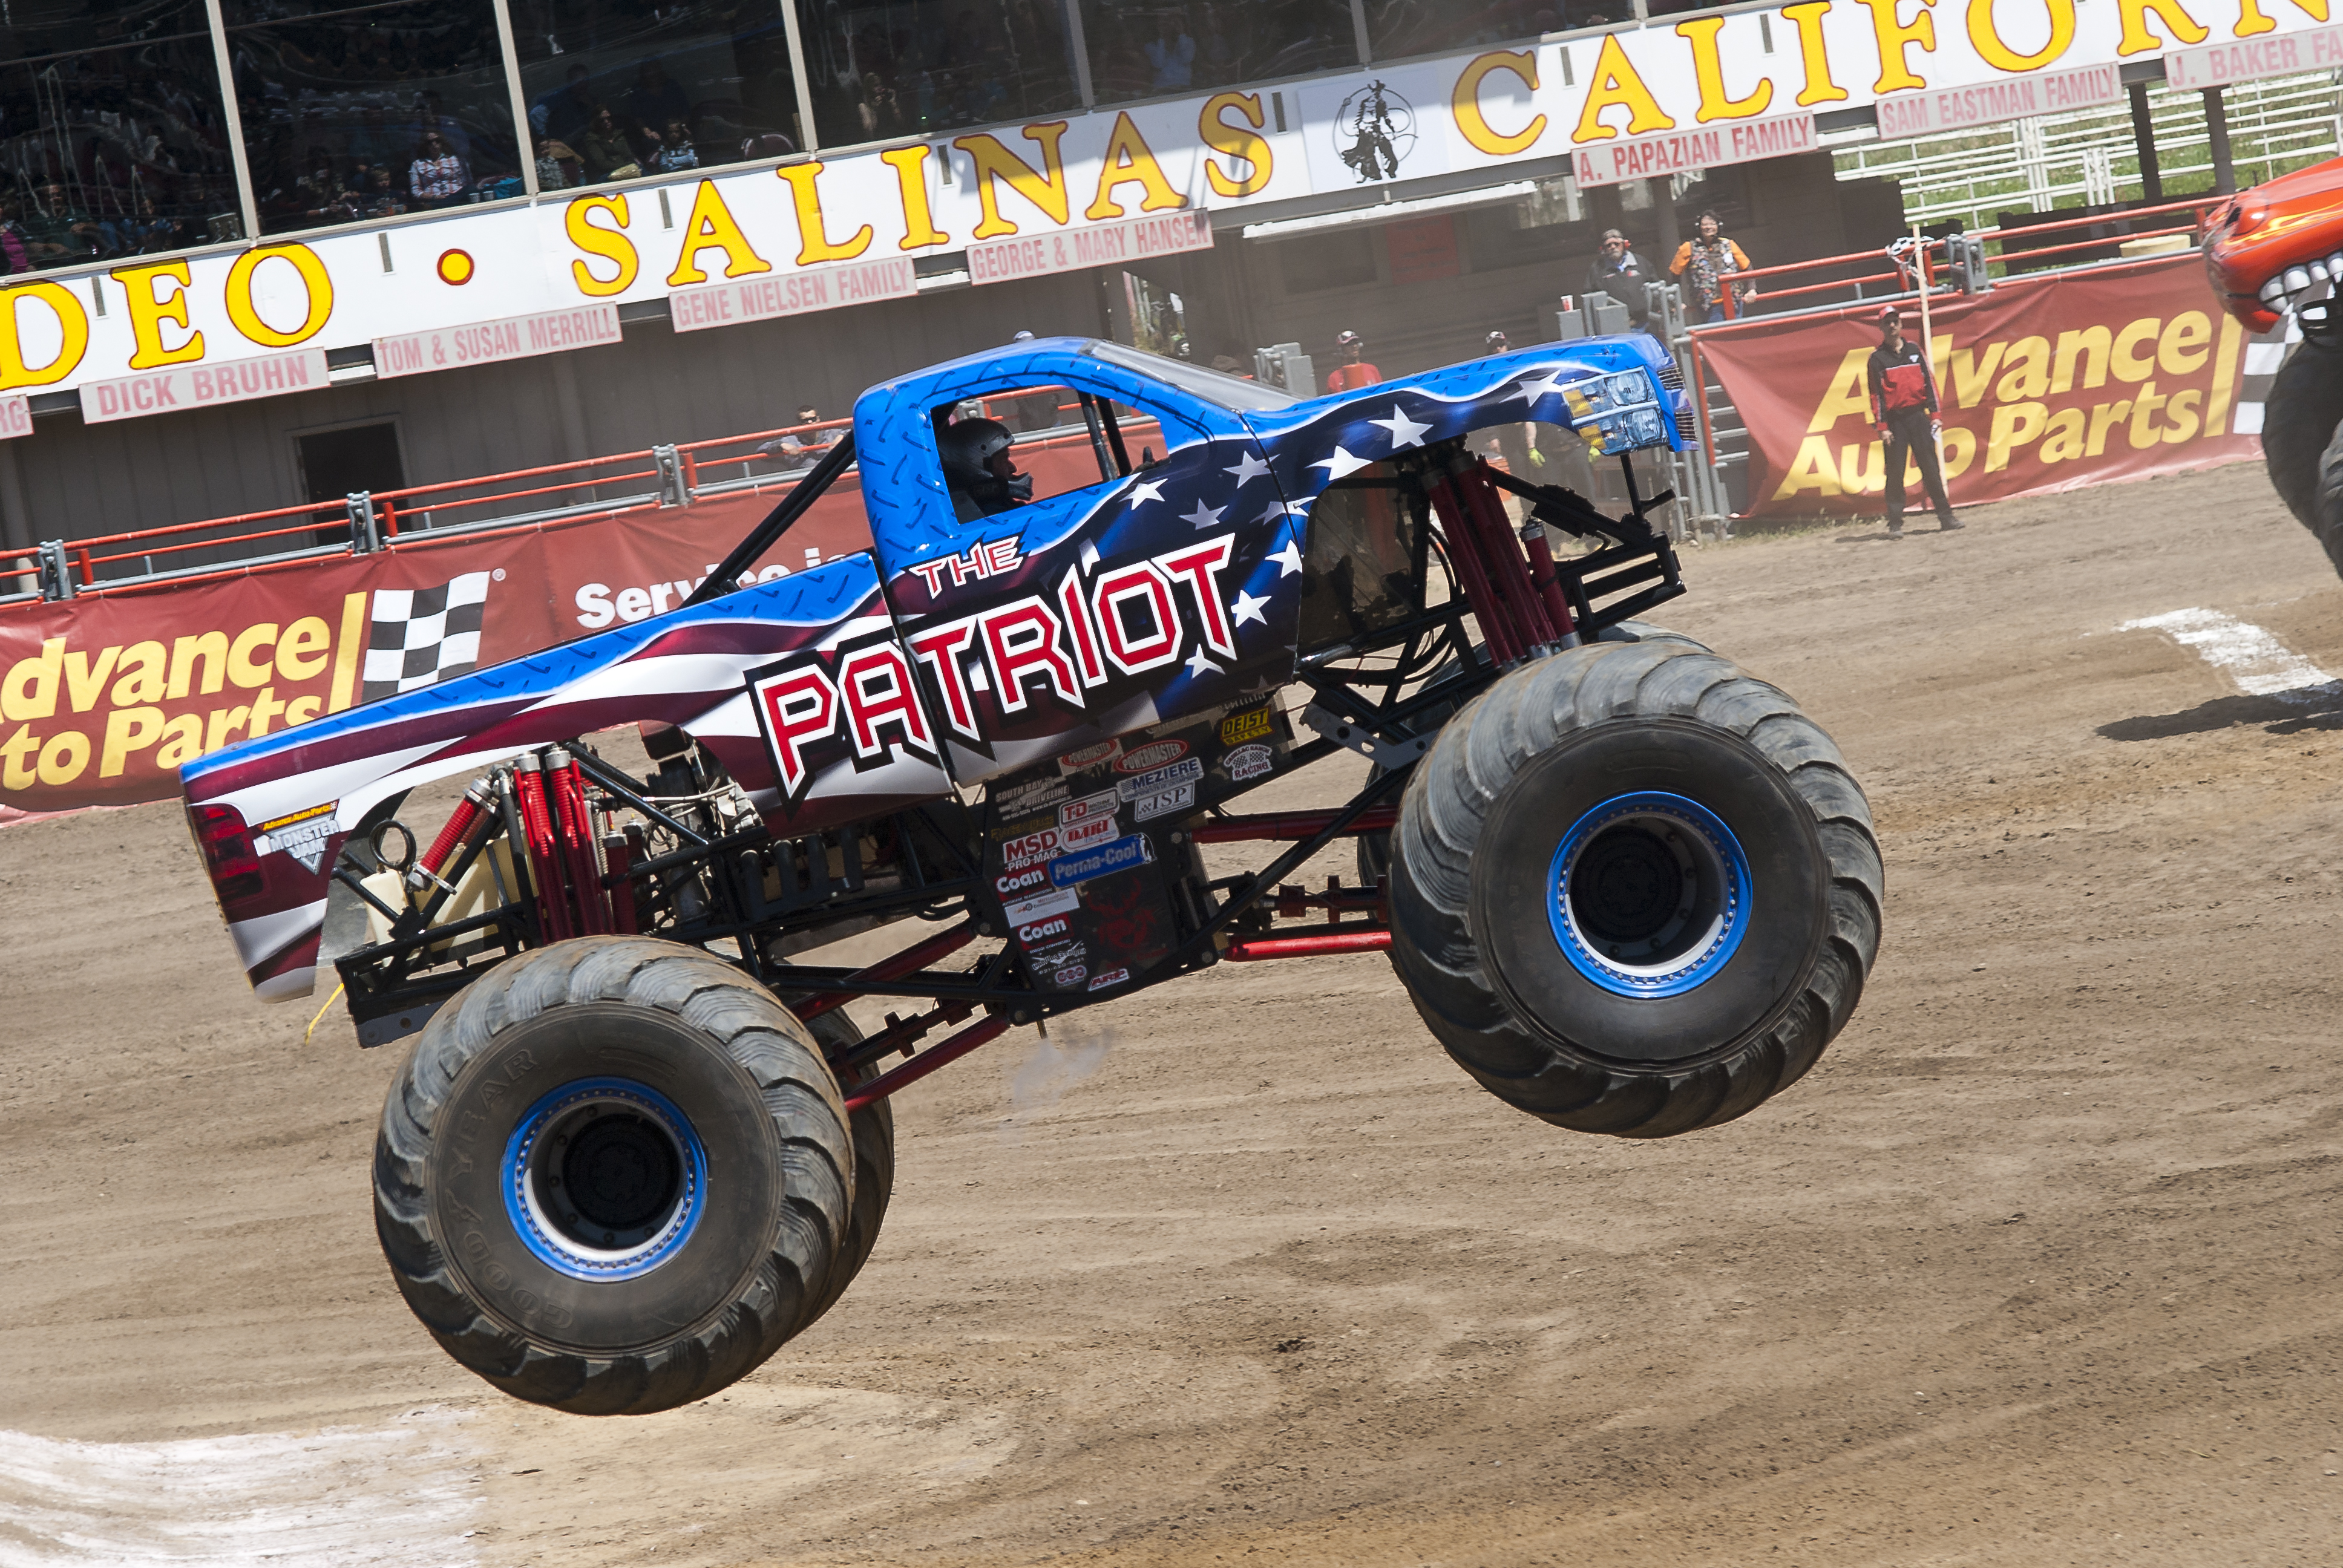 General Lee Monster Truck Monster truck the patriot by